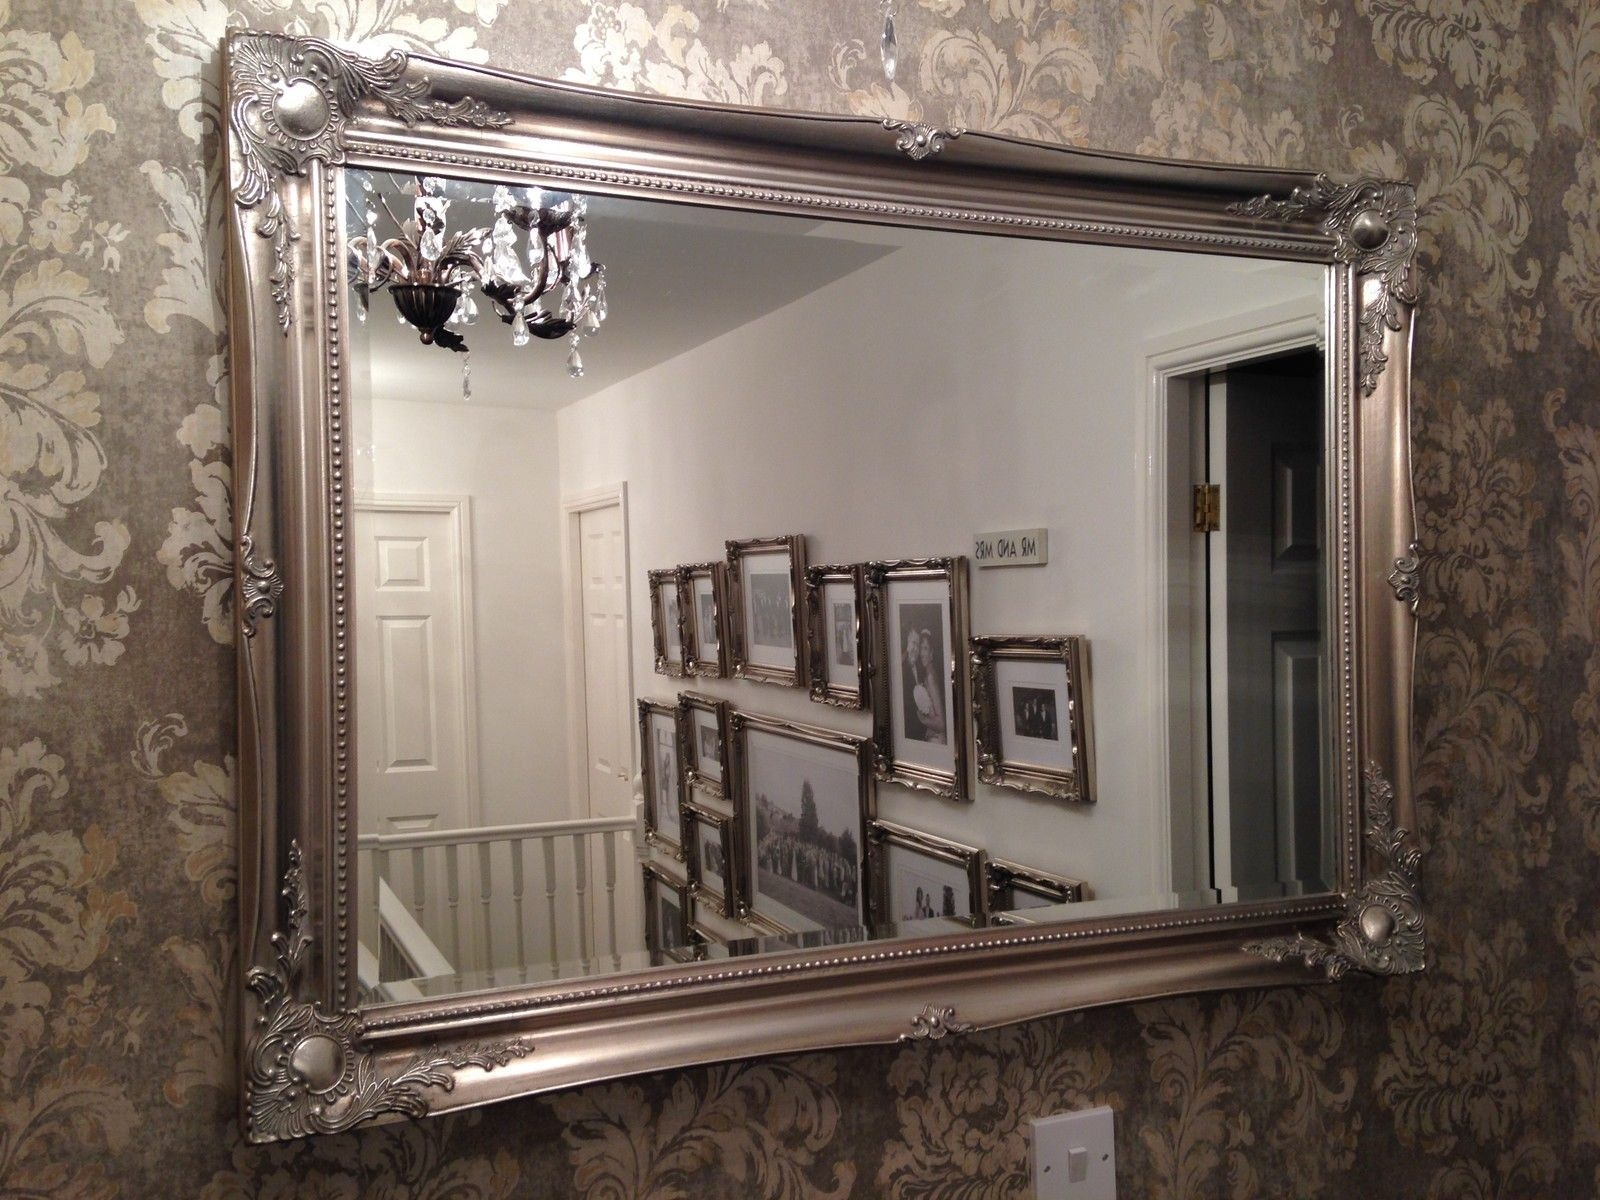 Silver Ornate Framed Long Mirror Crushed Gravel Very Large Silver In Round Shabby Chic Mirror (Image 15 of 15)